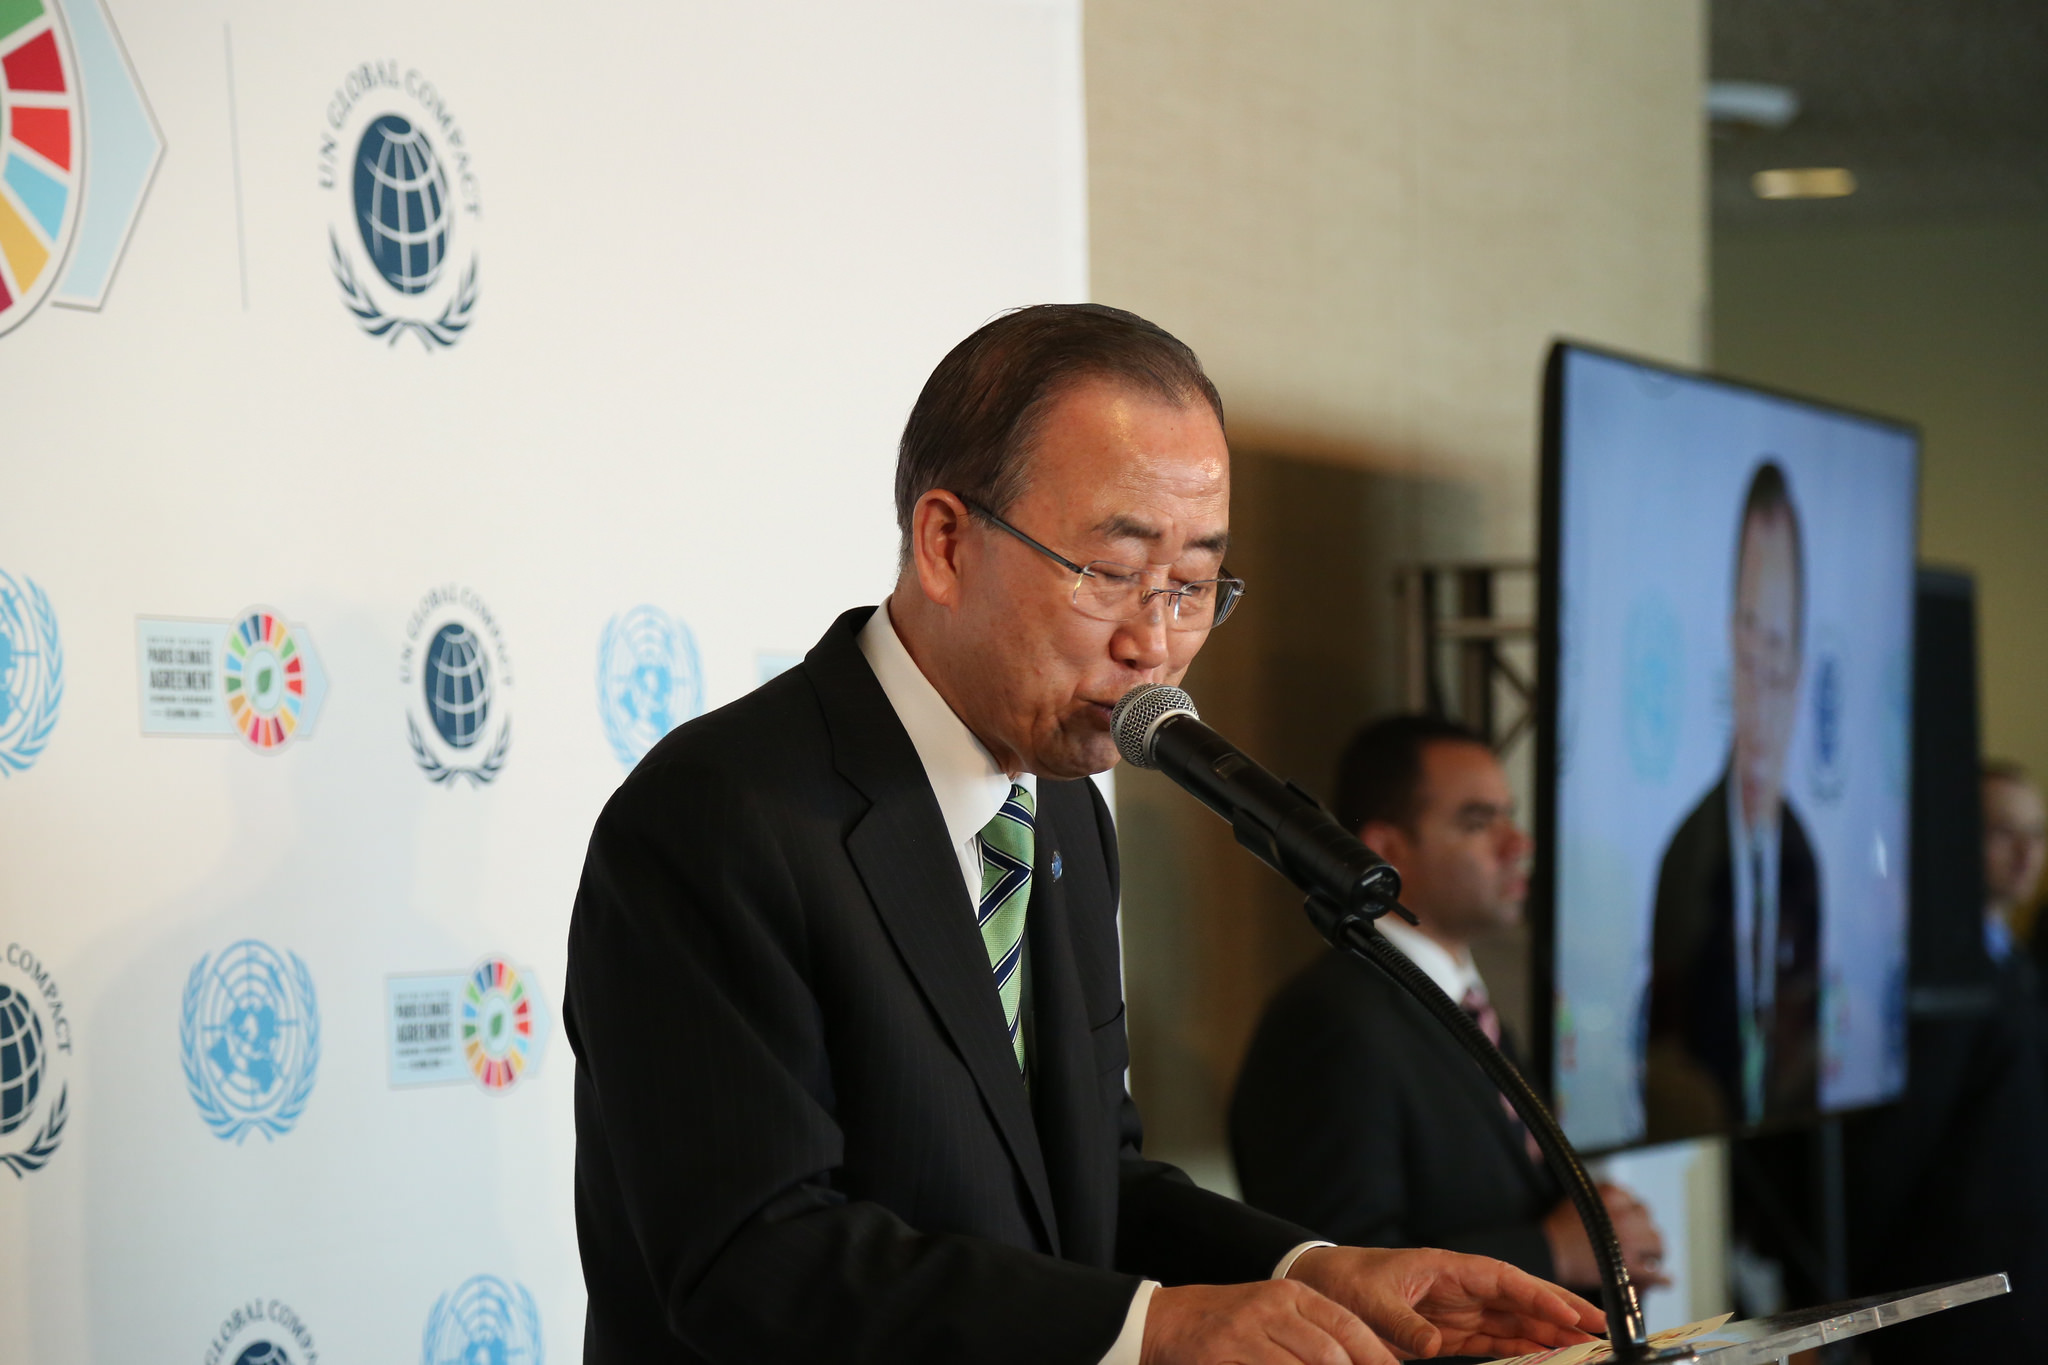 CEOs Engage To Advance The Sustainable Development Goals PYXERA Global